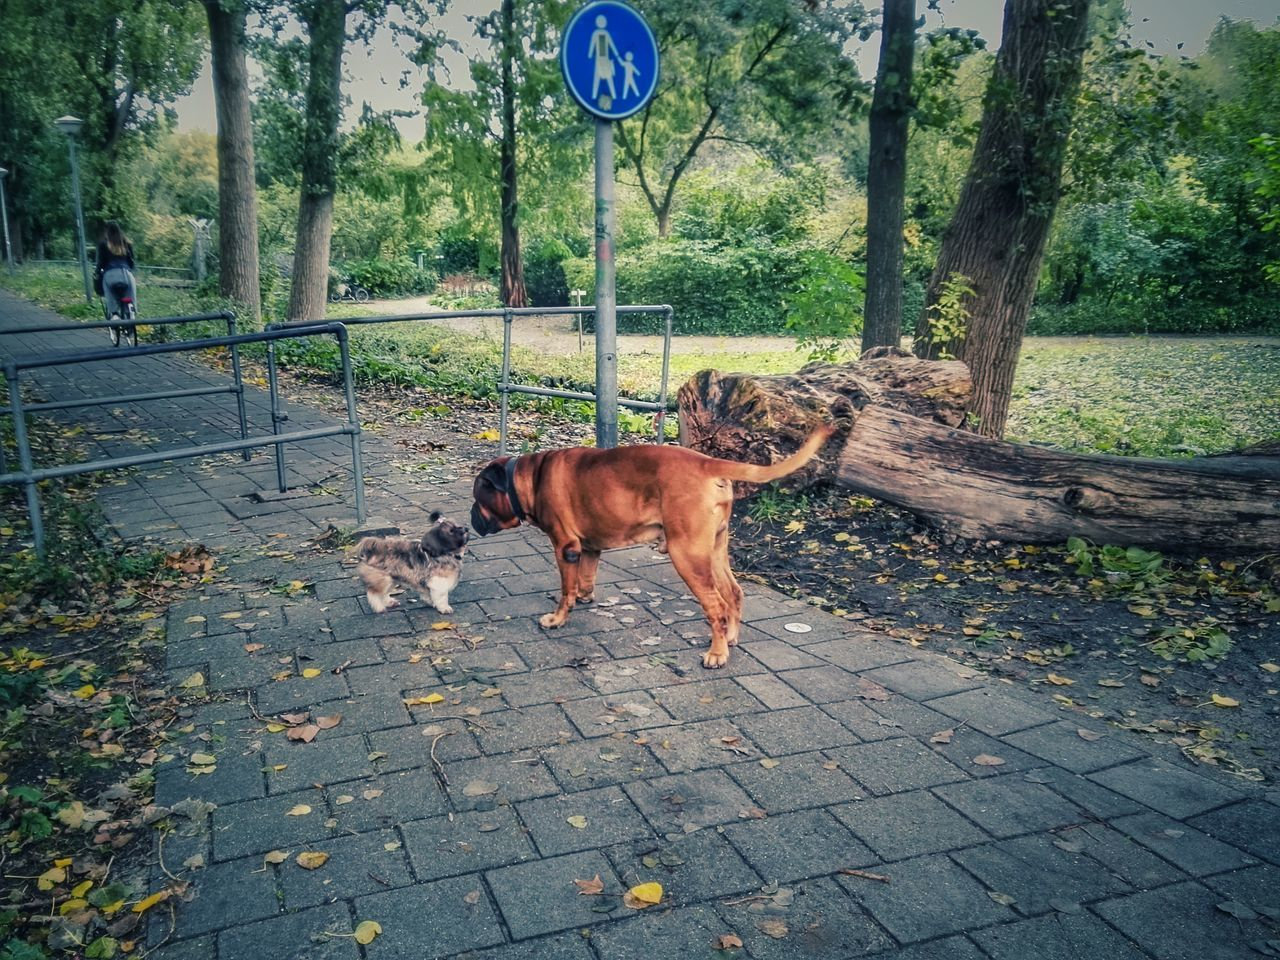 Dog Nature Pets Domestic Animals Mammal Tree Outdoors Dogs Big Dog Small Dog Contrast Big Small Fall Colors After The Rain Autumn Amsterdam Tree